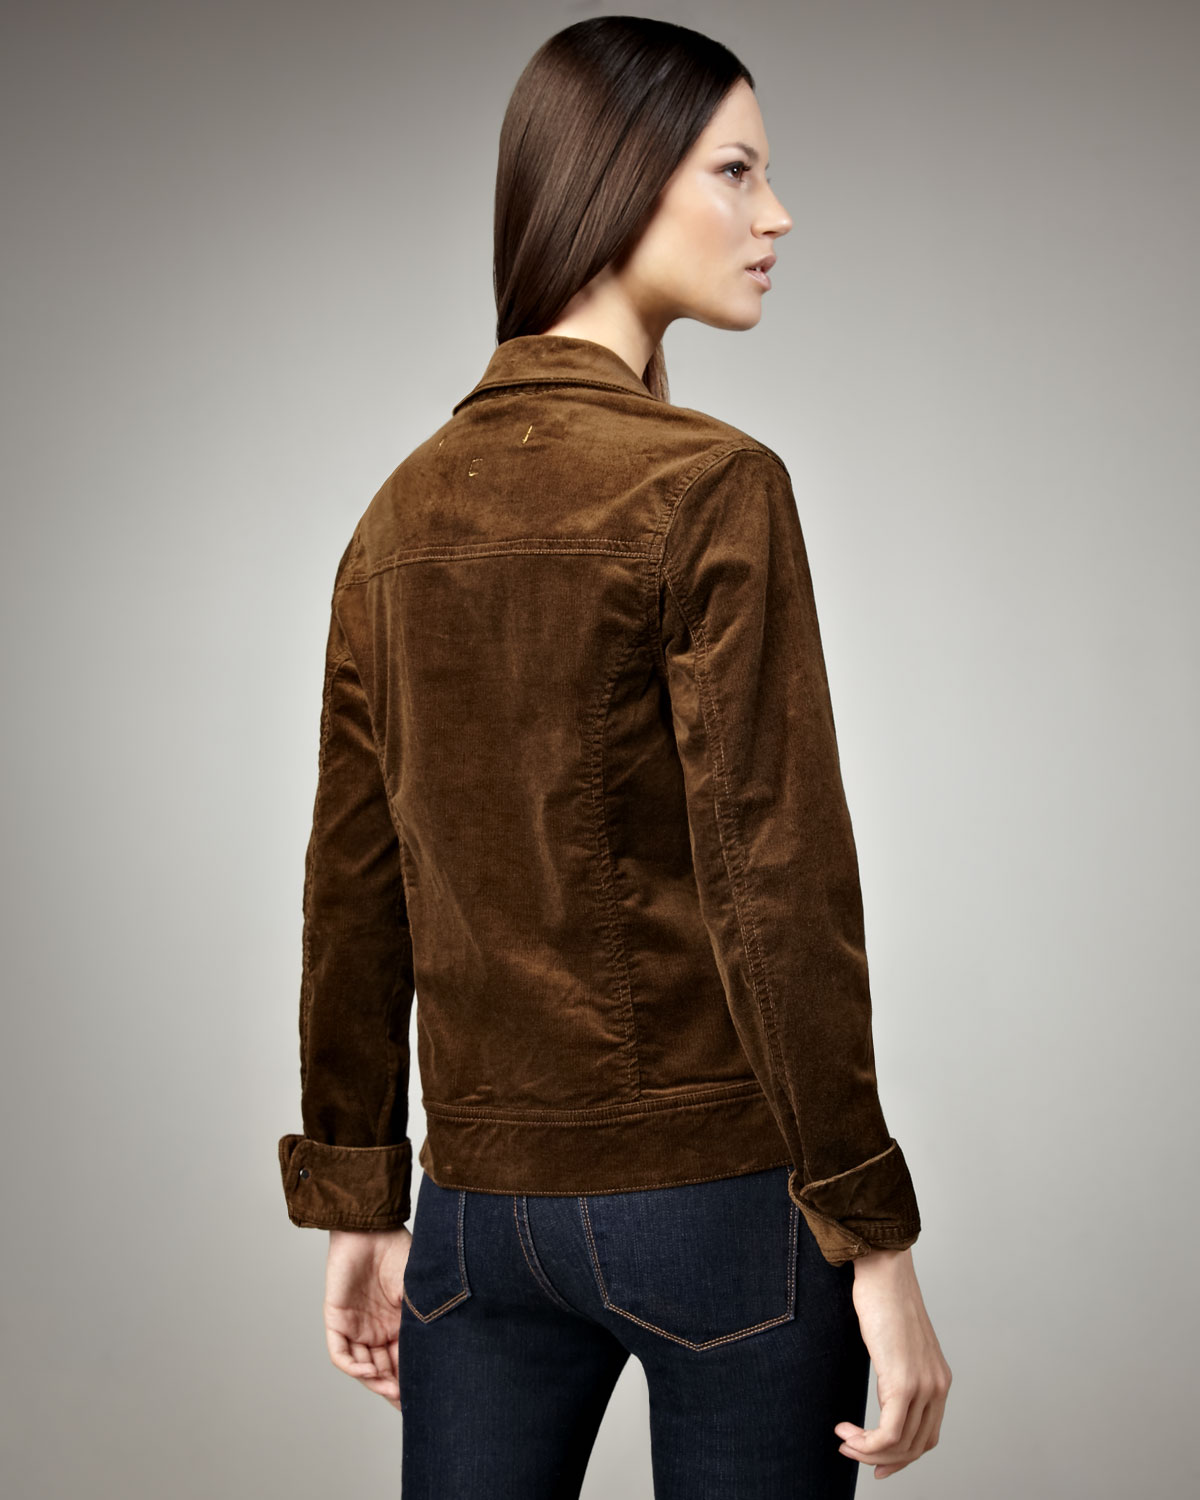 Christopher Blue Smith Corduroy Jacket In Brown Lyst